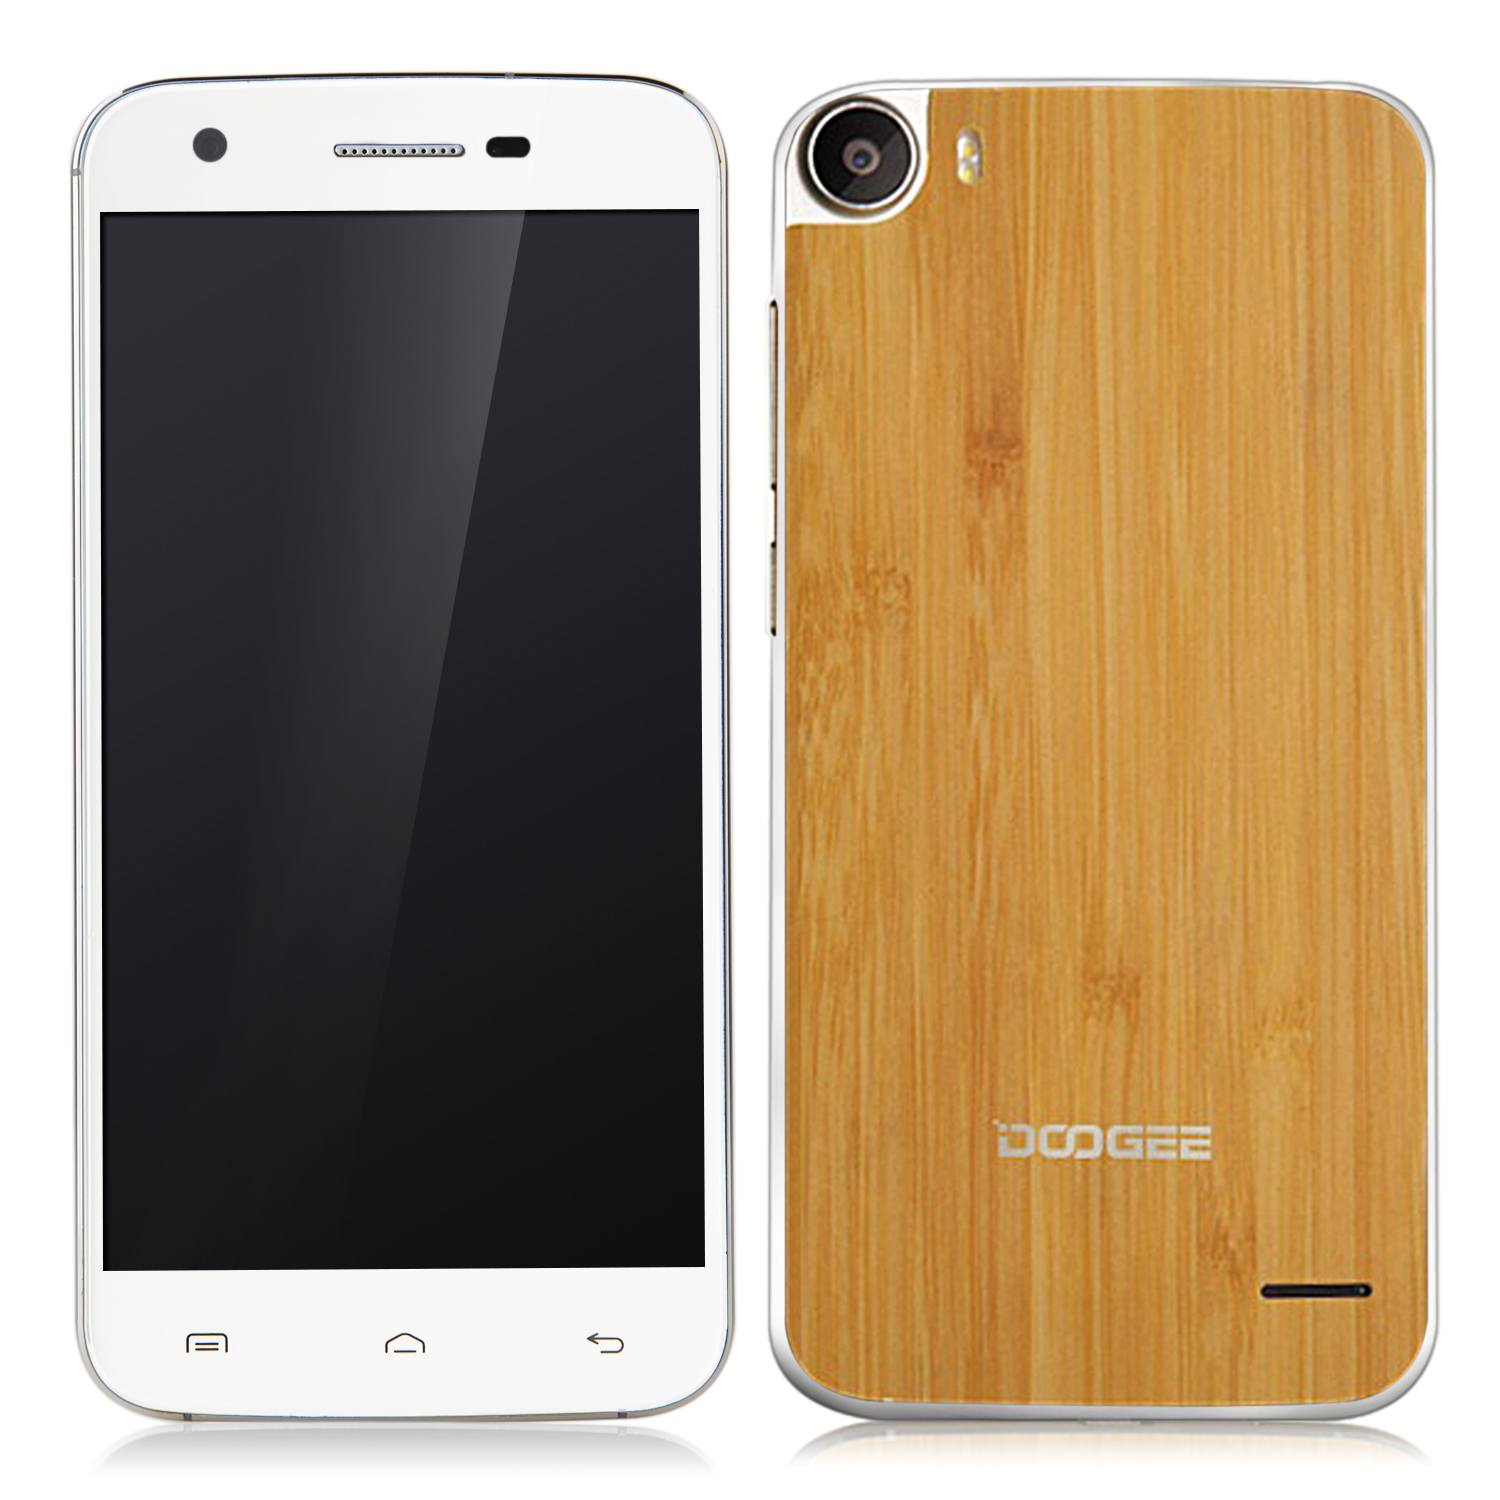 DOOGEE F3 Pro Smartphone Bamboo Shell 3GB 16GB 5.0 Inch FHD Octa Core Android 5.1